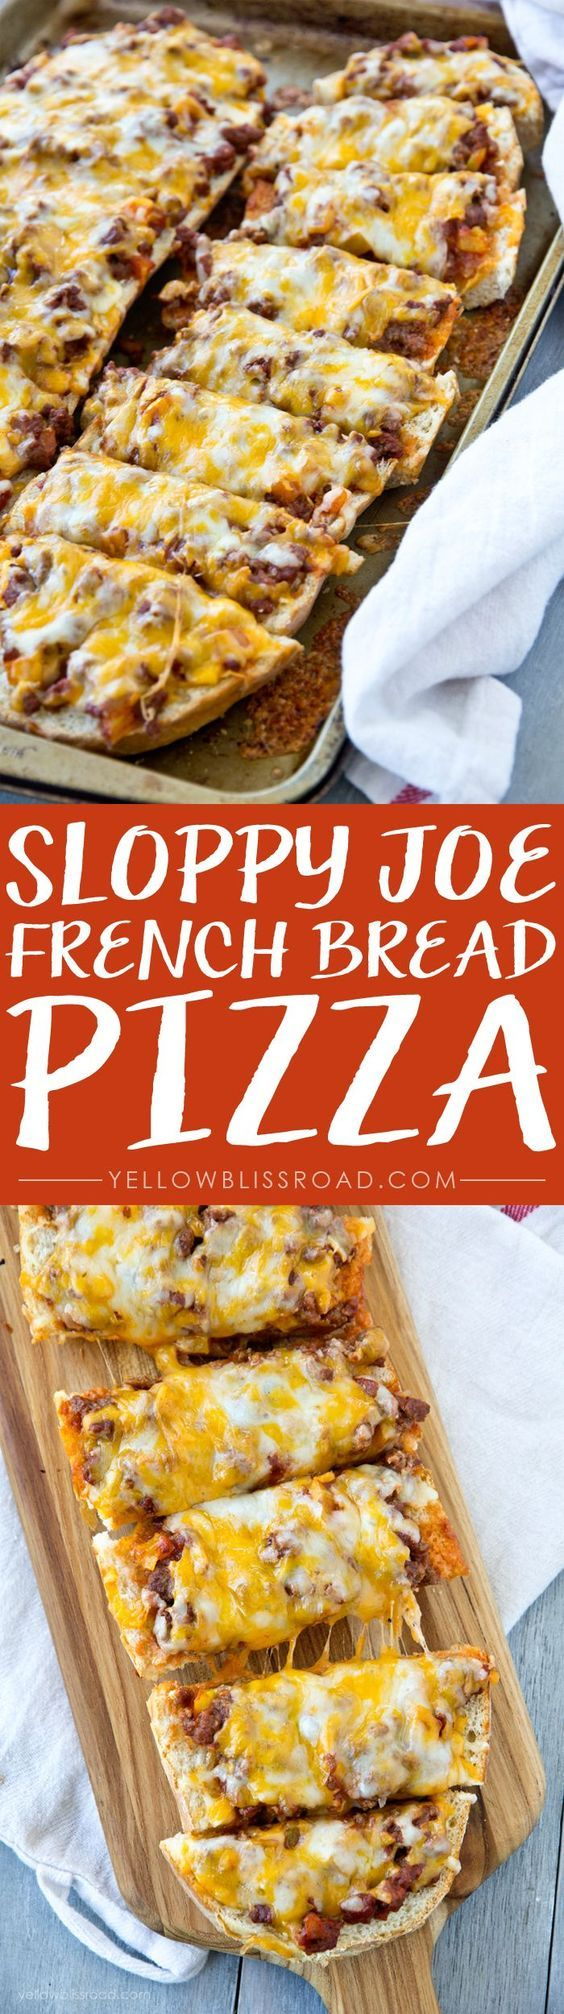 Easy Cheesy and Not too messy Sloppy Joe French Bread Pizza